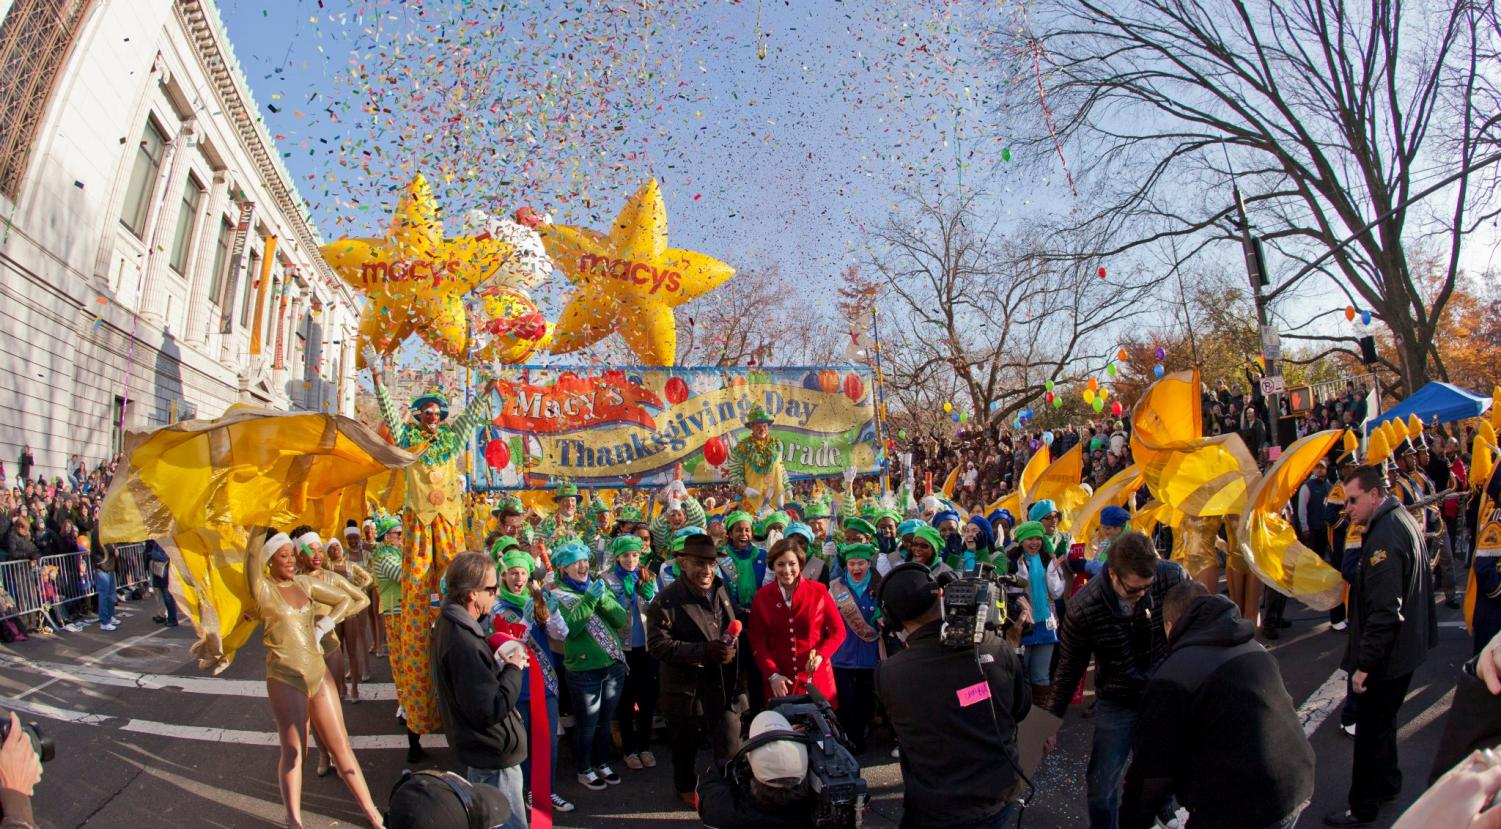 Each year, the Macy's Thanksgiving Day Parade is part of many Americans' traditions for Thanksgiving Day.